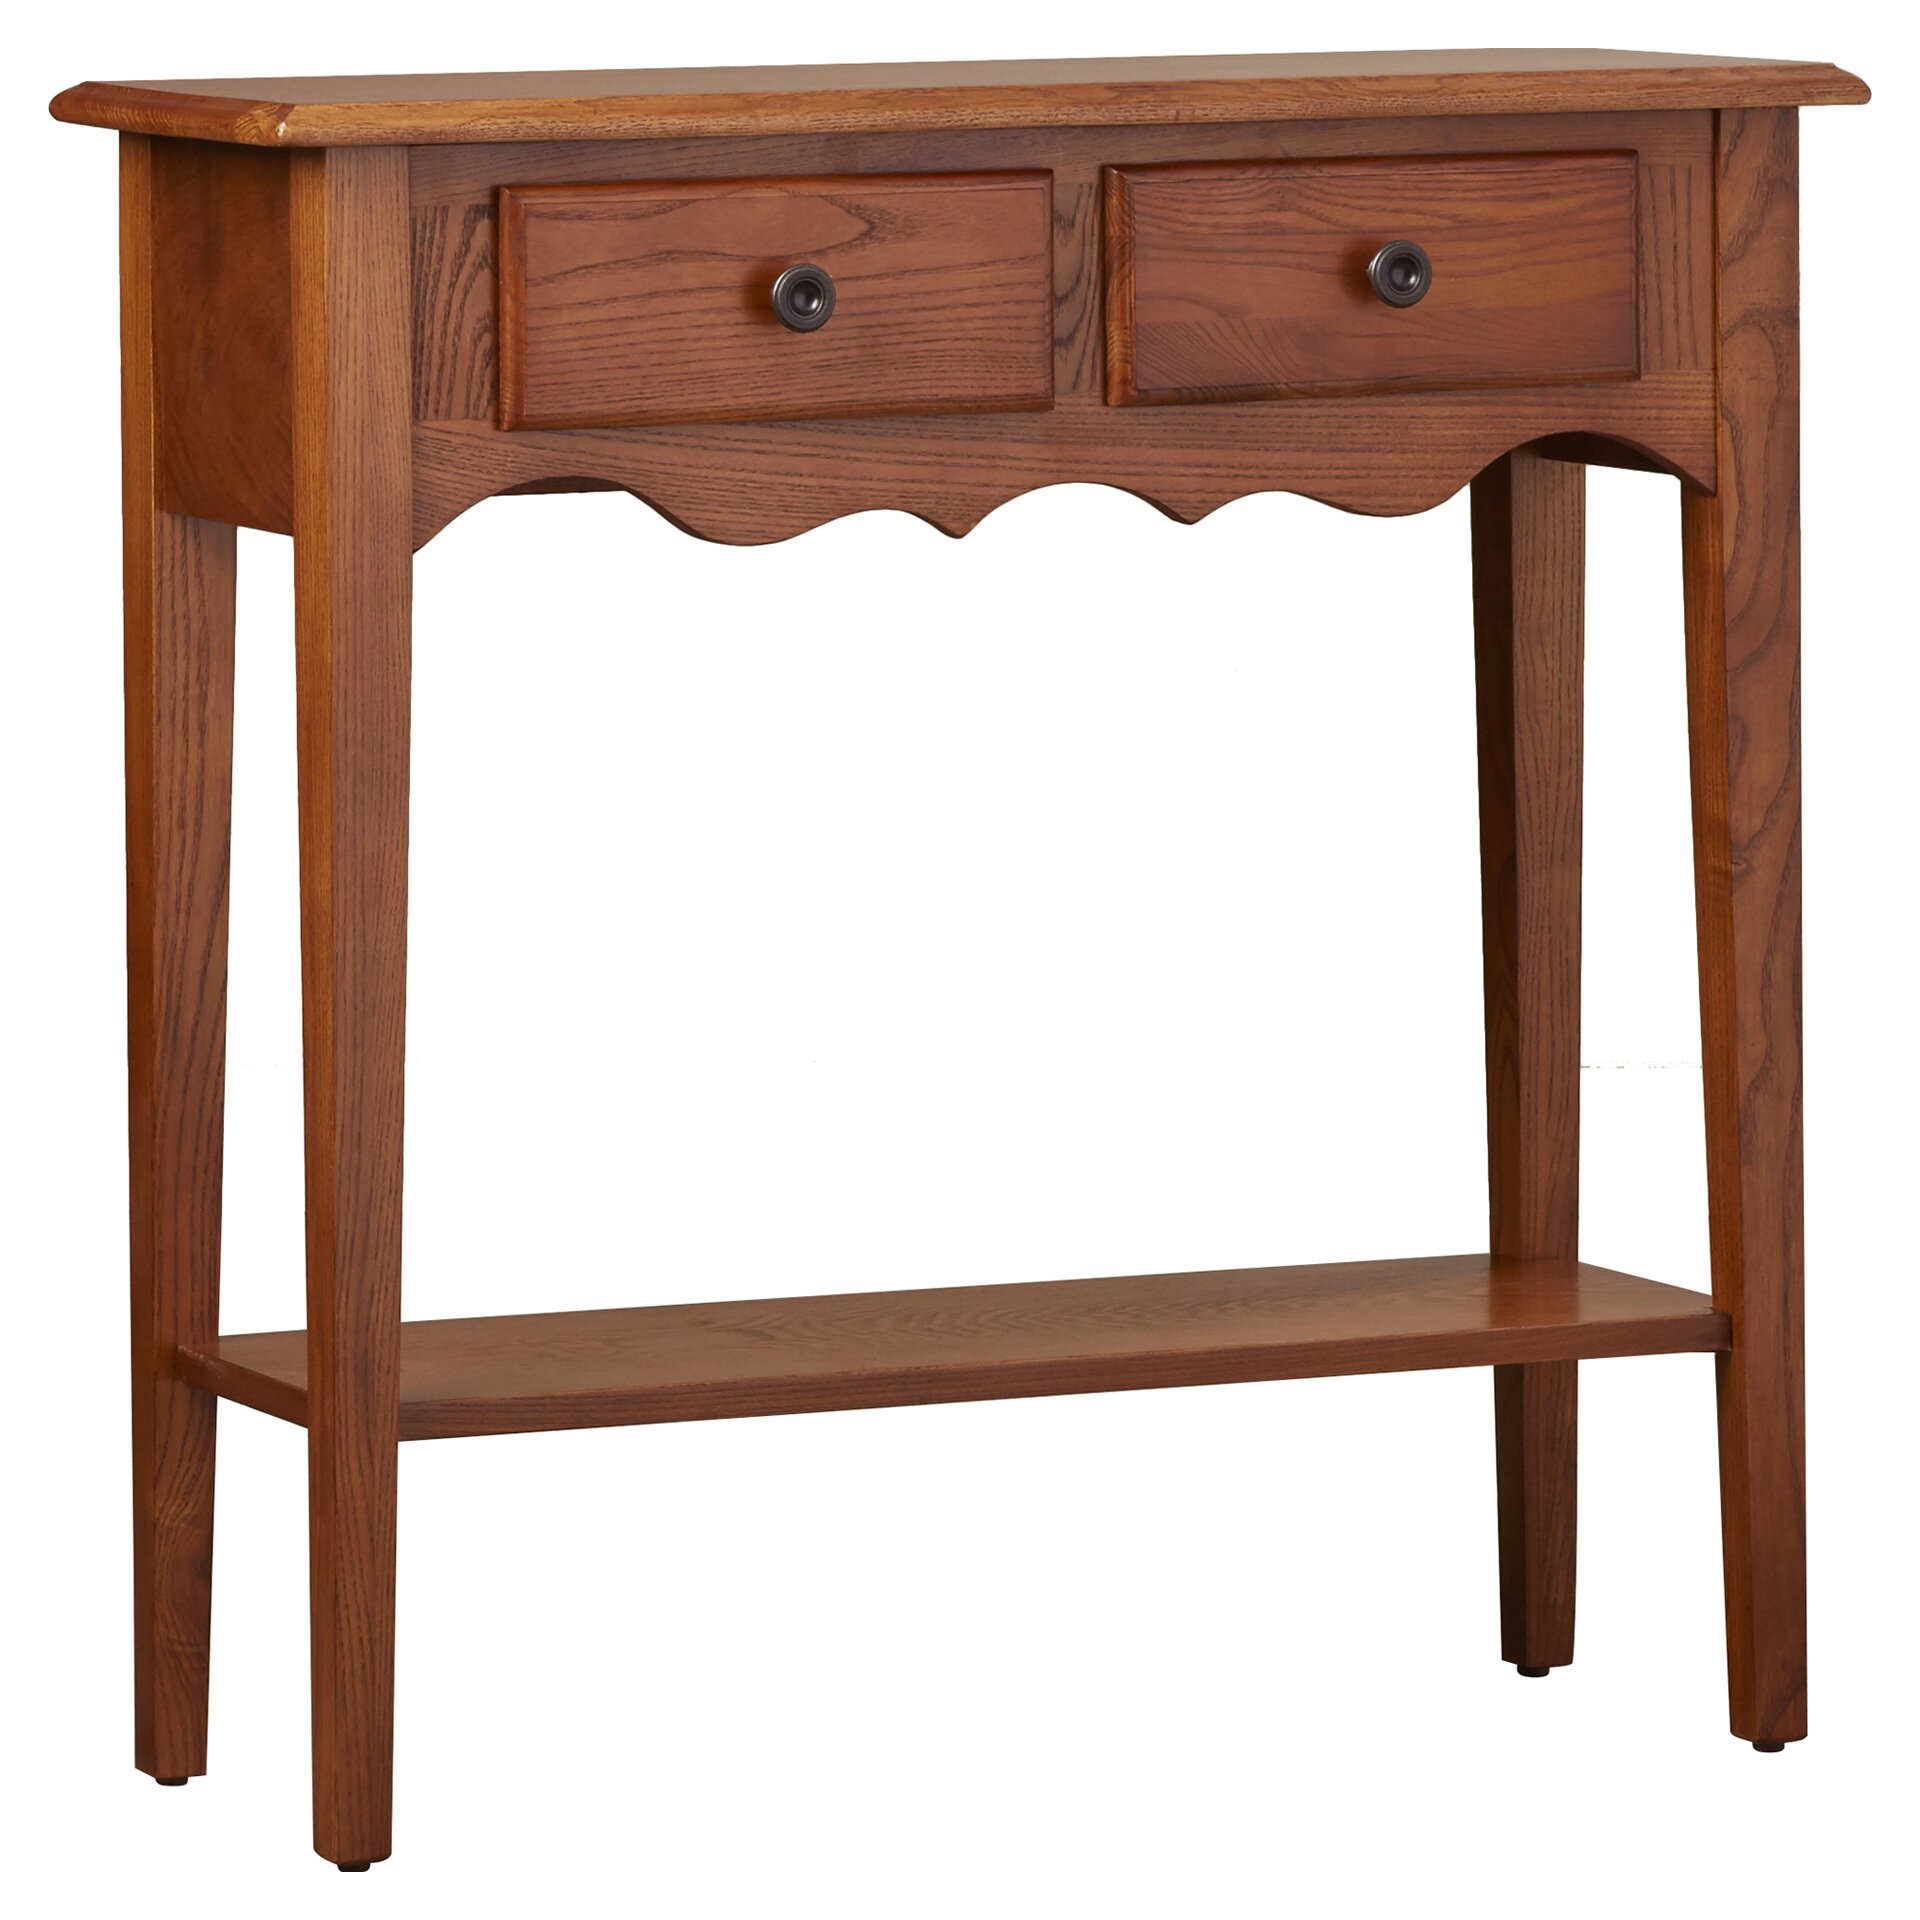 charlton home apple valley petite console table reviews wayfair. Black Bedroom Furniture Sets. Home Design Ideas